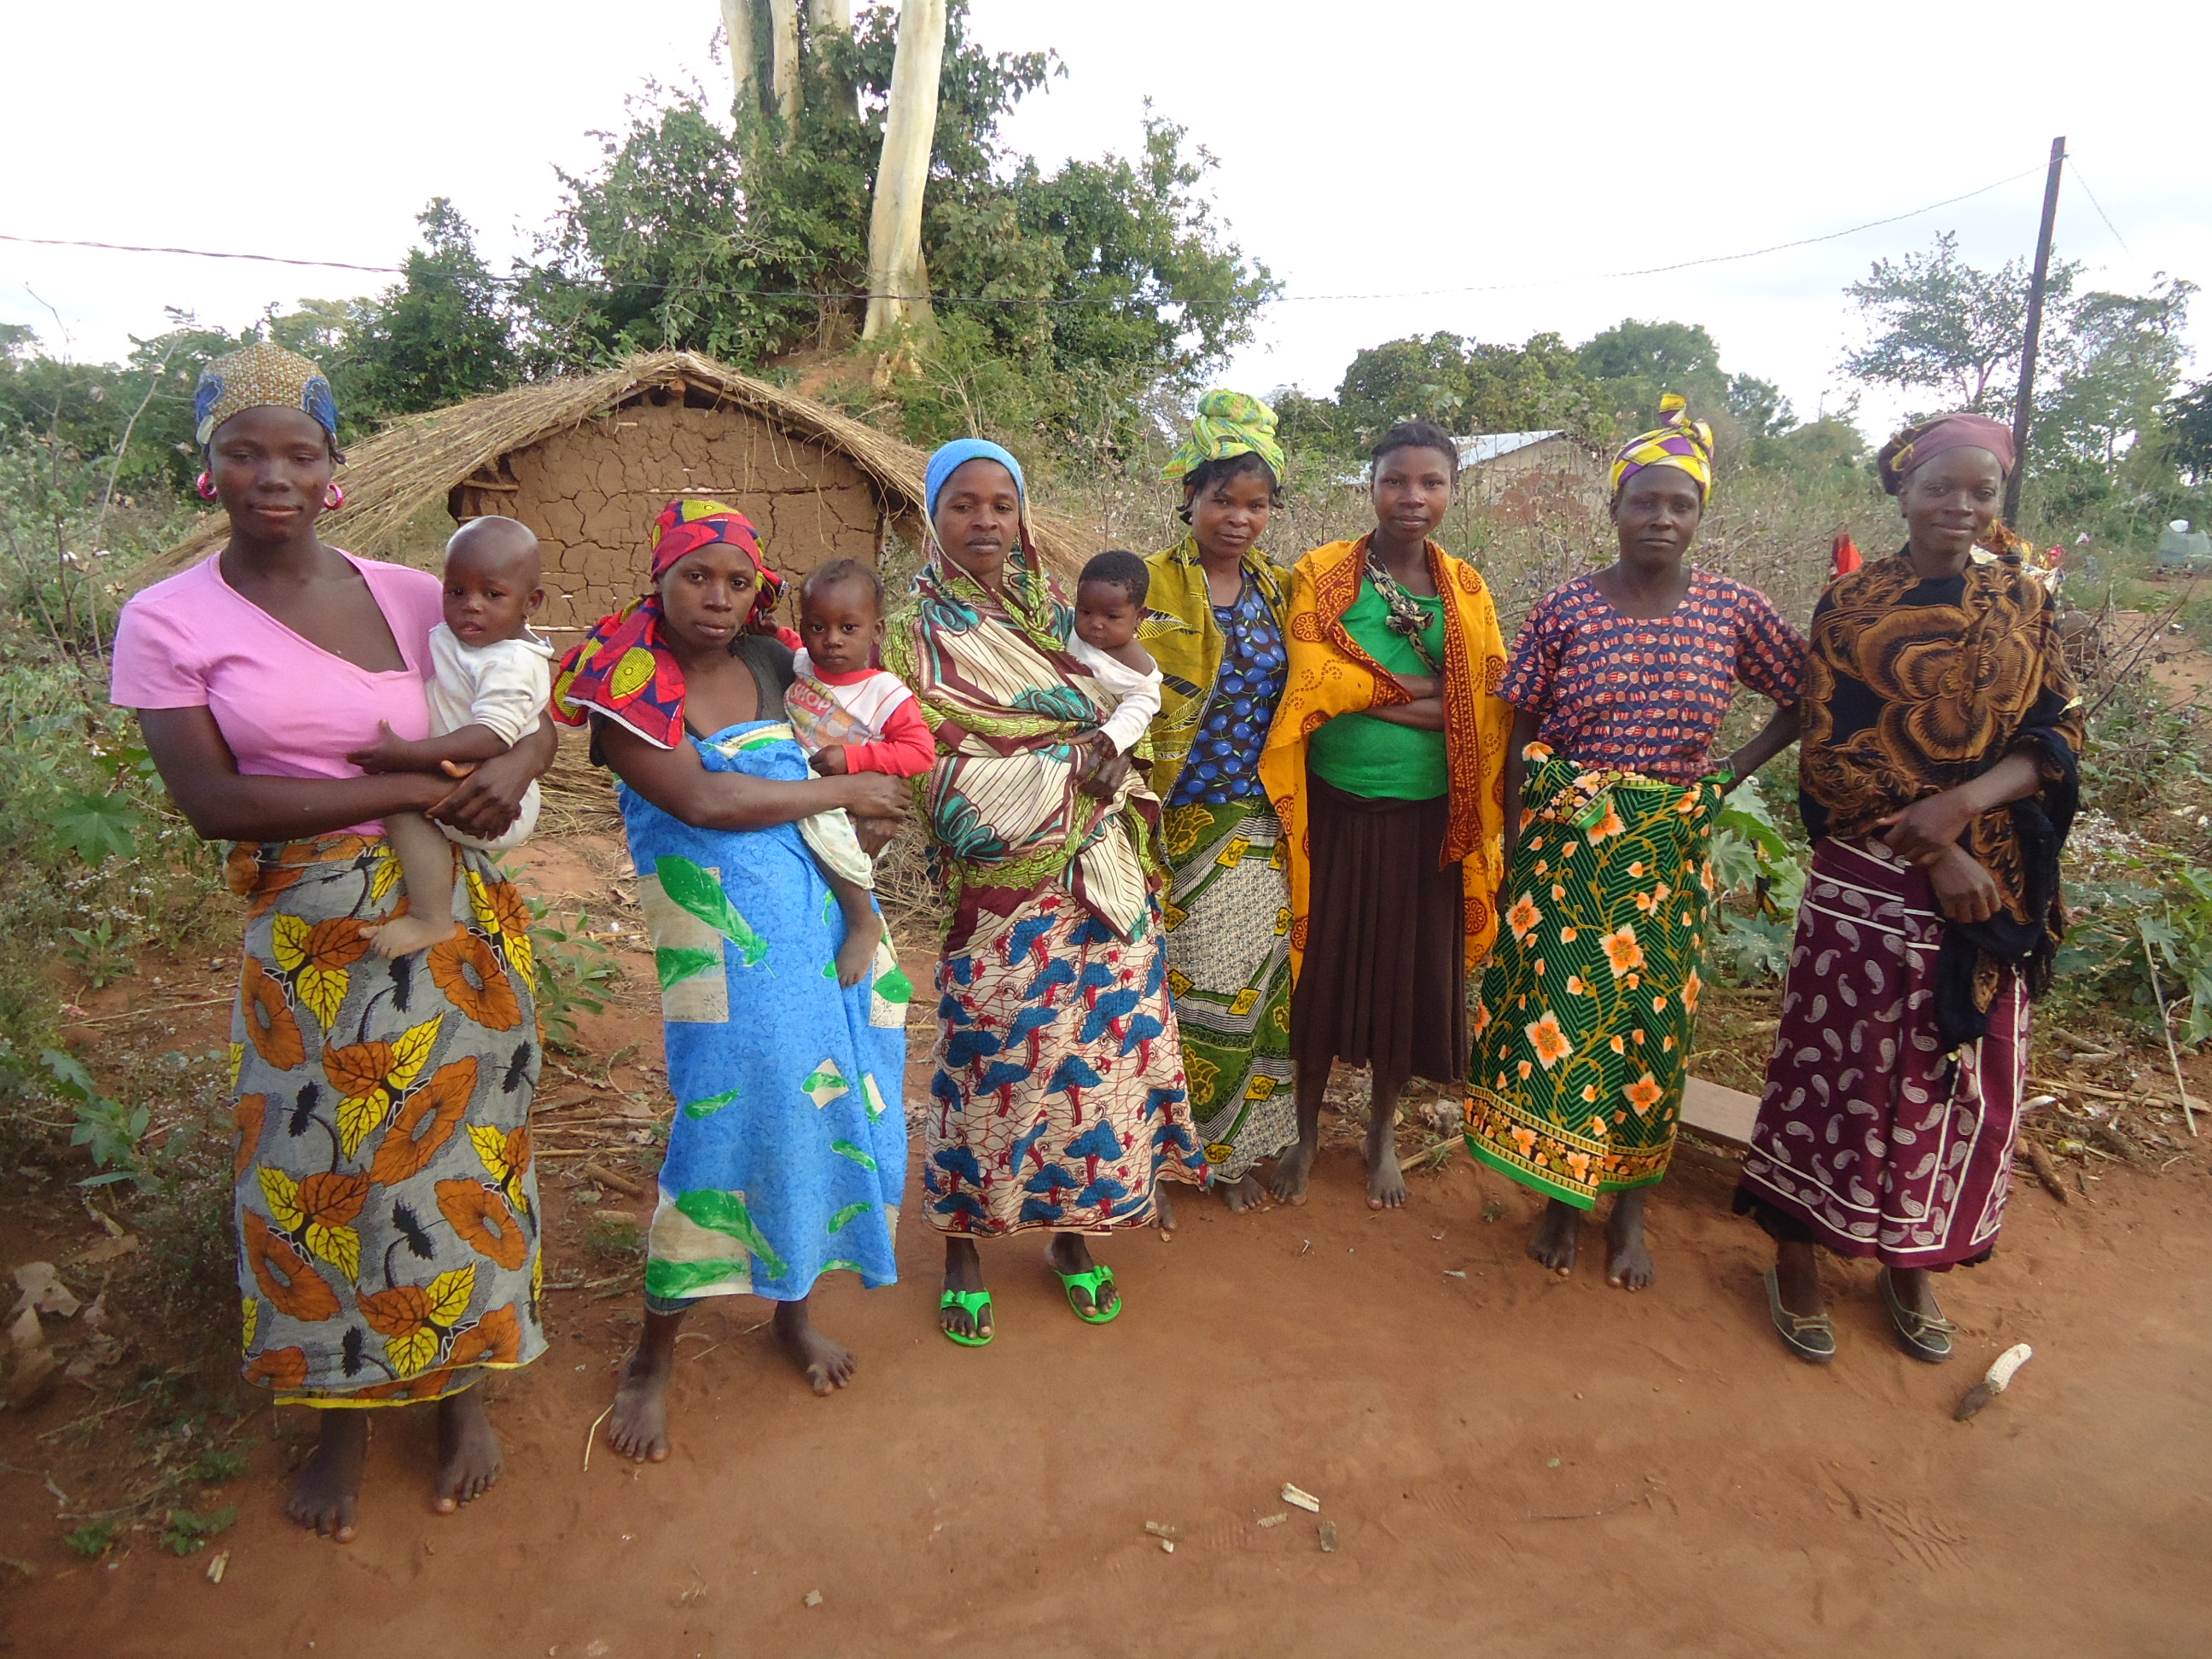 Women_Farmers_in_Itoculu_Monapo_District_Mozambique.jpg